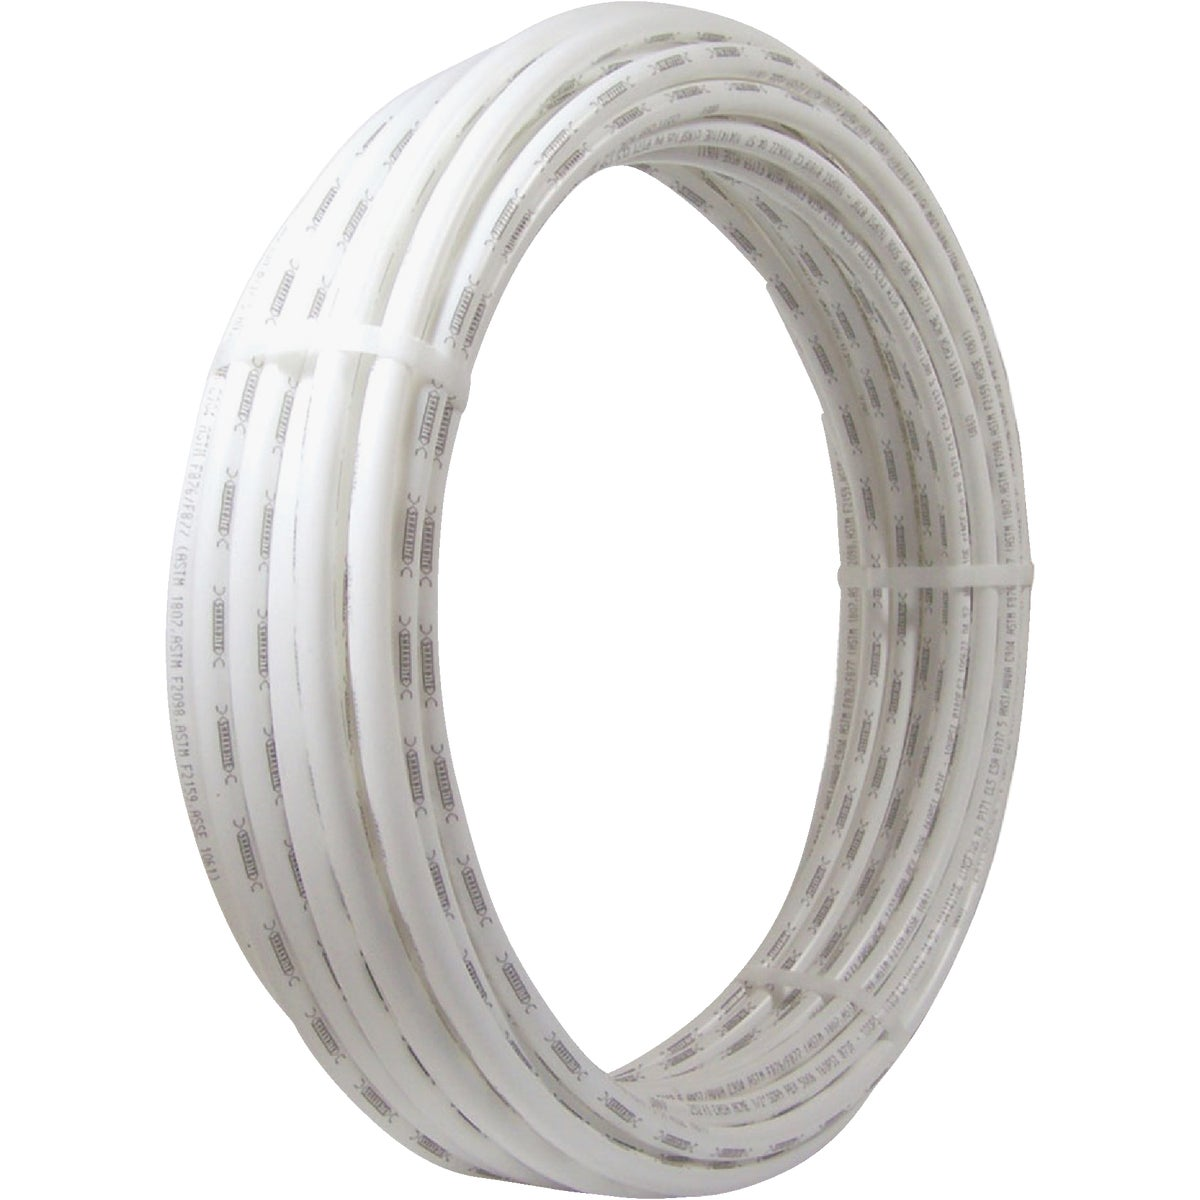 "1""X100' WHITE PEX TUBING - WPTC16-100W by Watts Regulator Co"